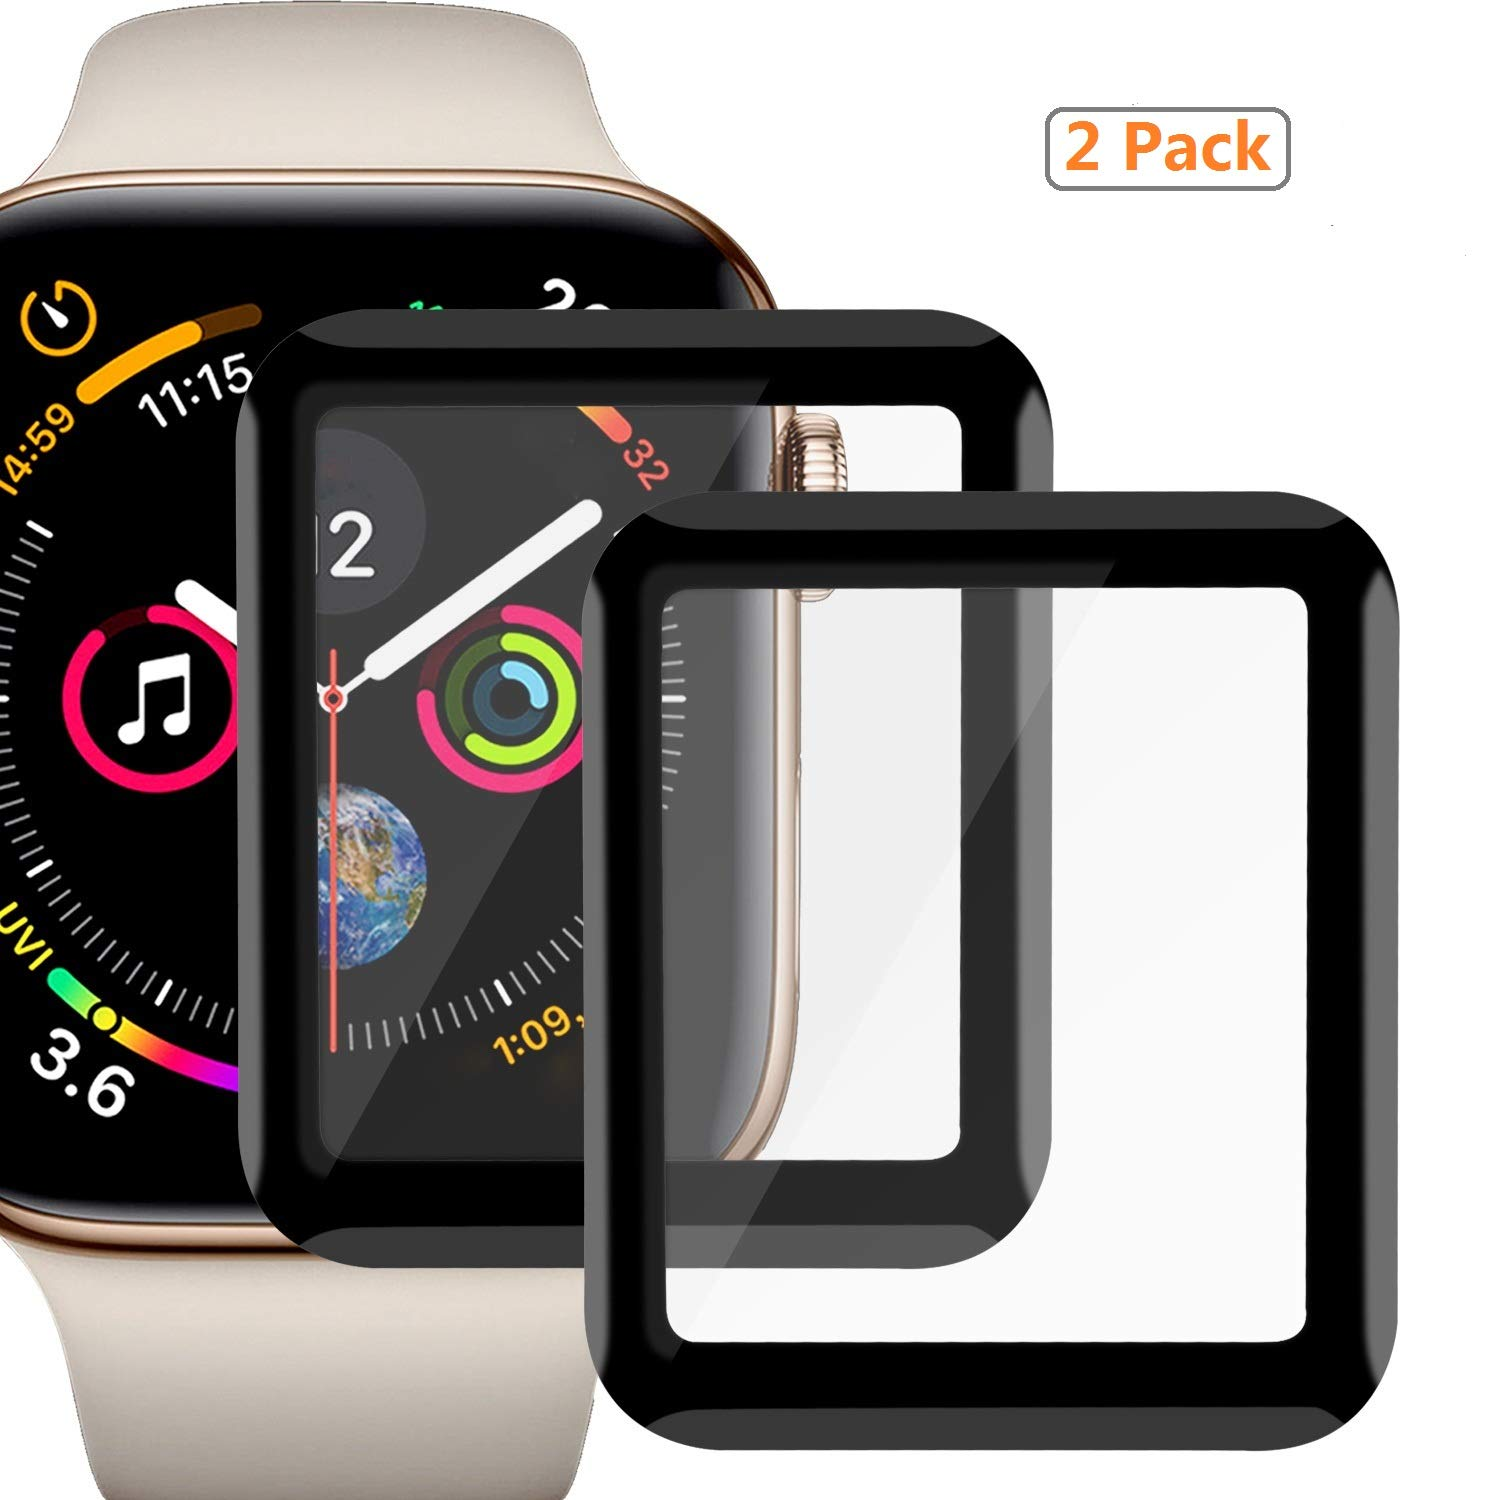 Apple Watch Screen Protector 38mm, Watch Advanced Screen Protector, [2 Pack] Anti-Scratch/Full Cover Tempered Film Compatible 38mm Series 1/2/3 Black by Meshion